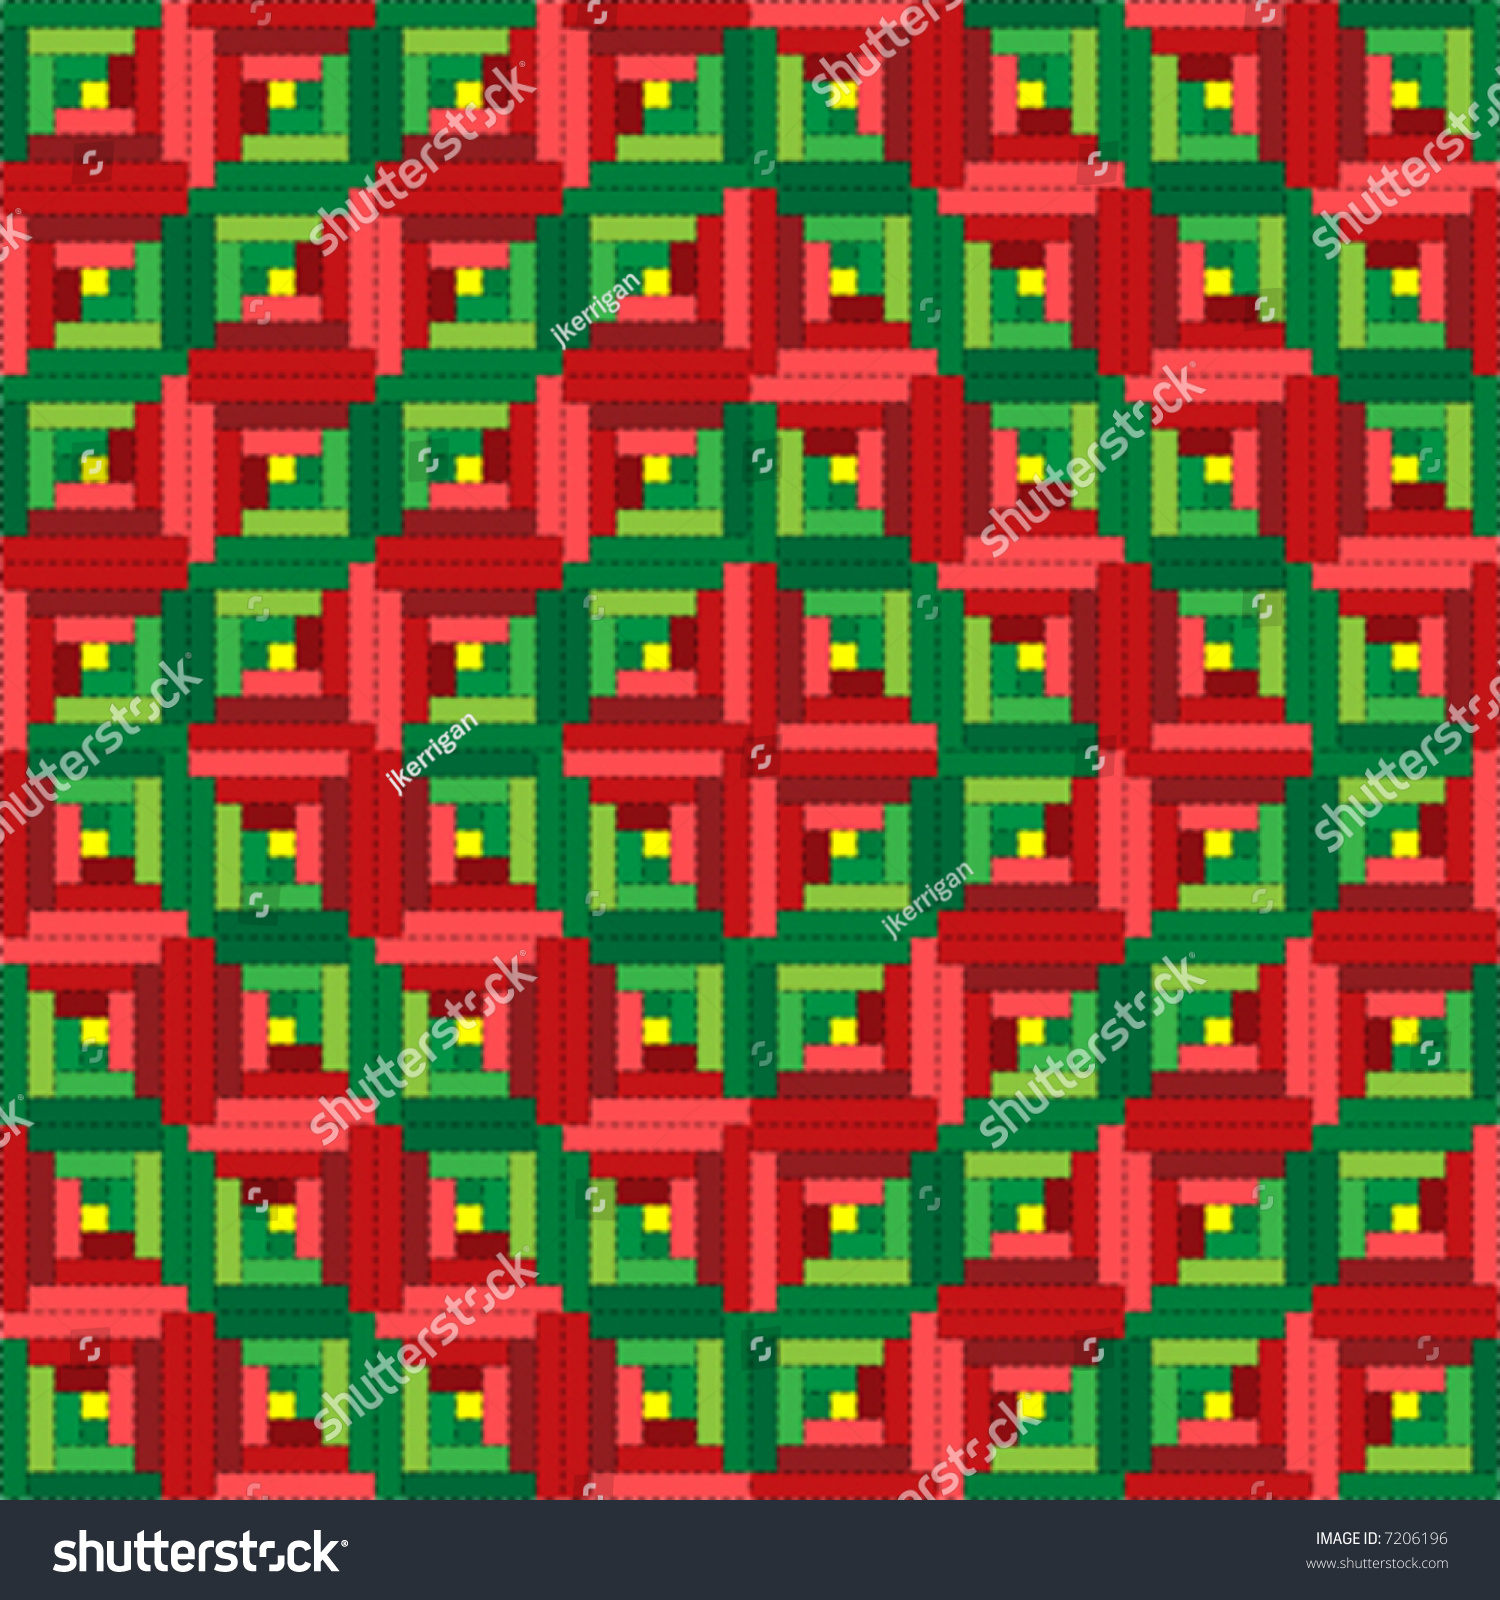 Barn Raising Quilt Pattern Free Knitting : Log Cabin Quilt Clipart Cliparts